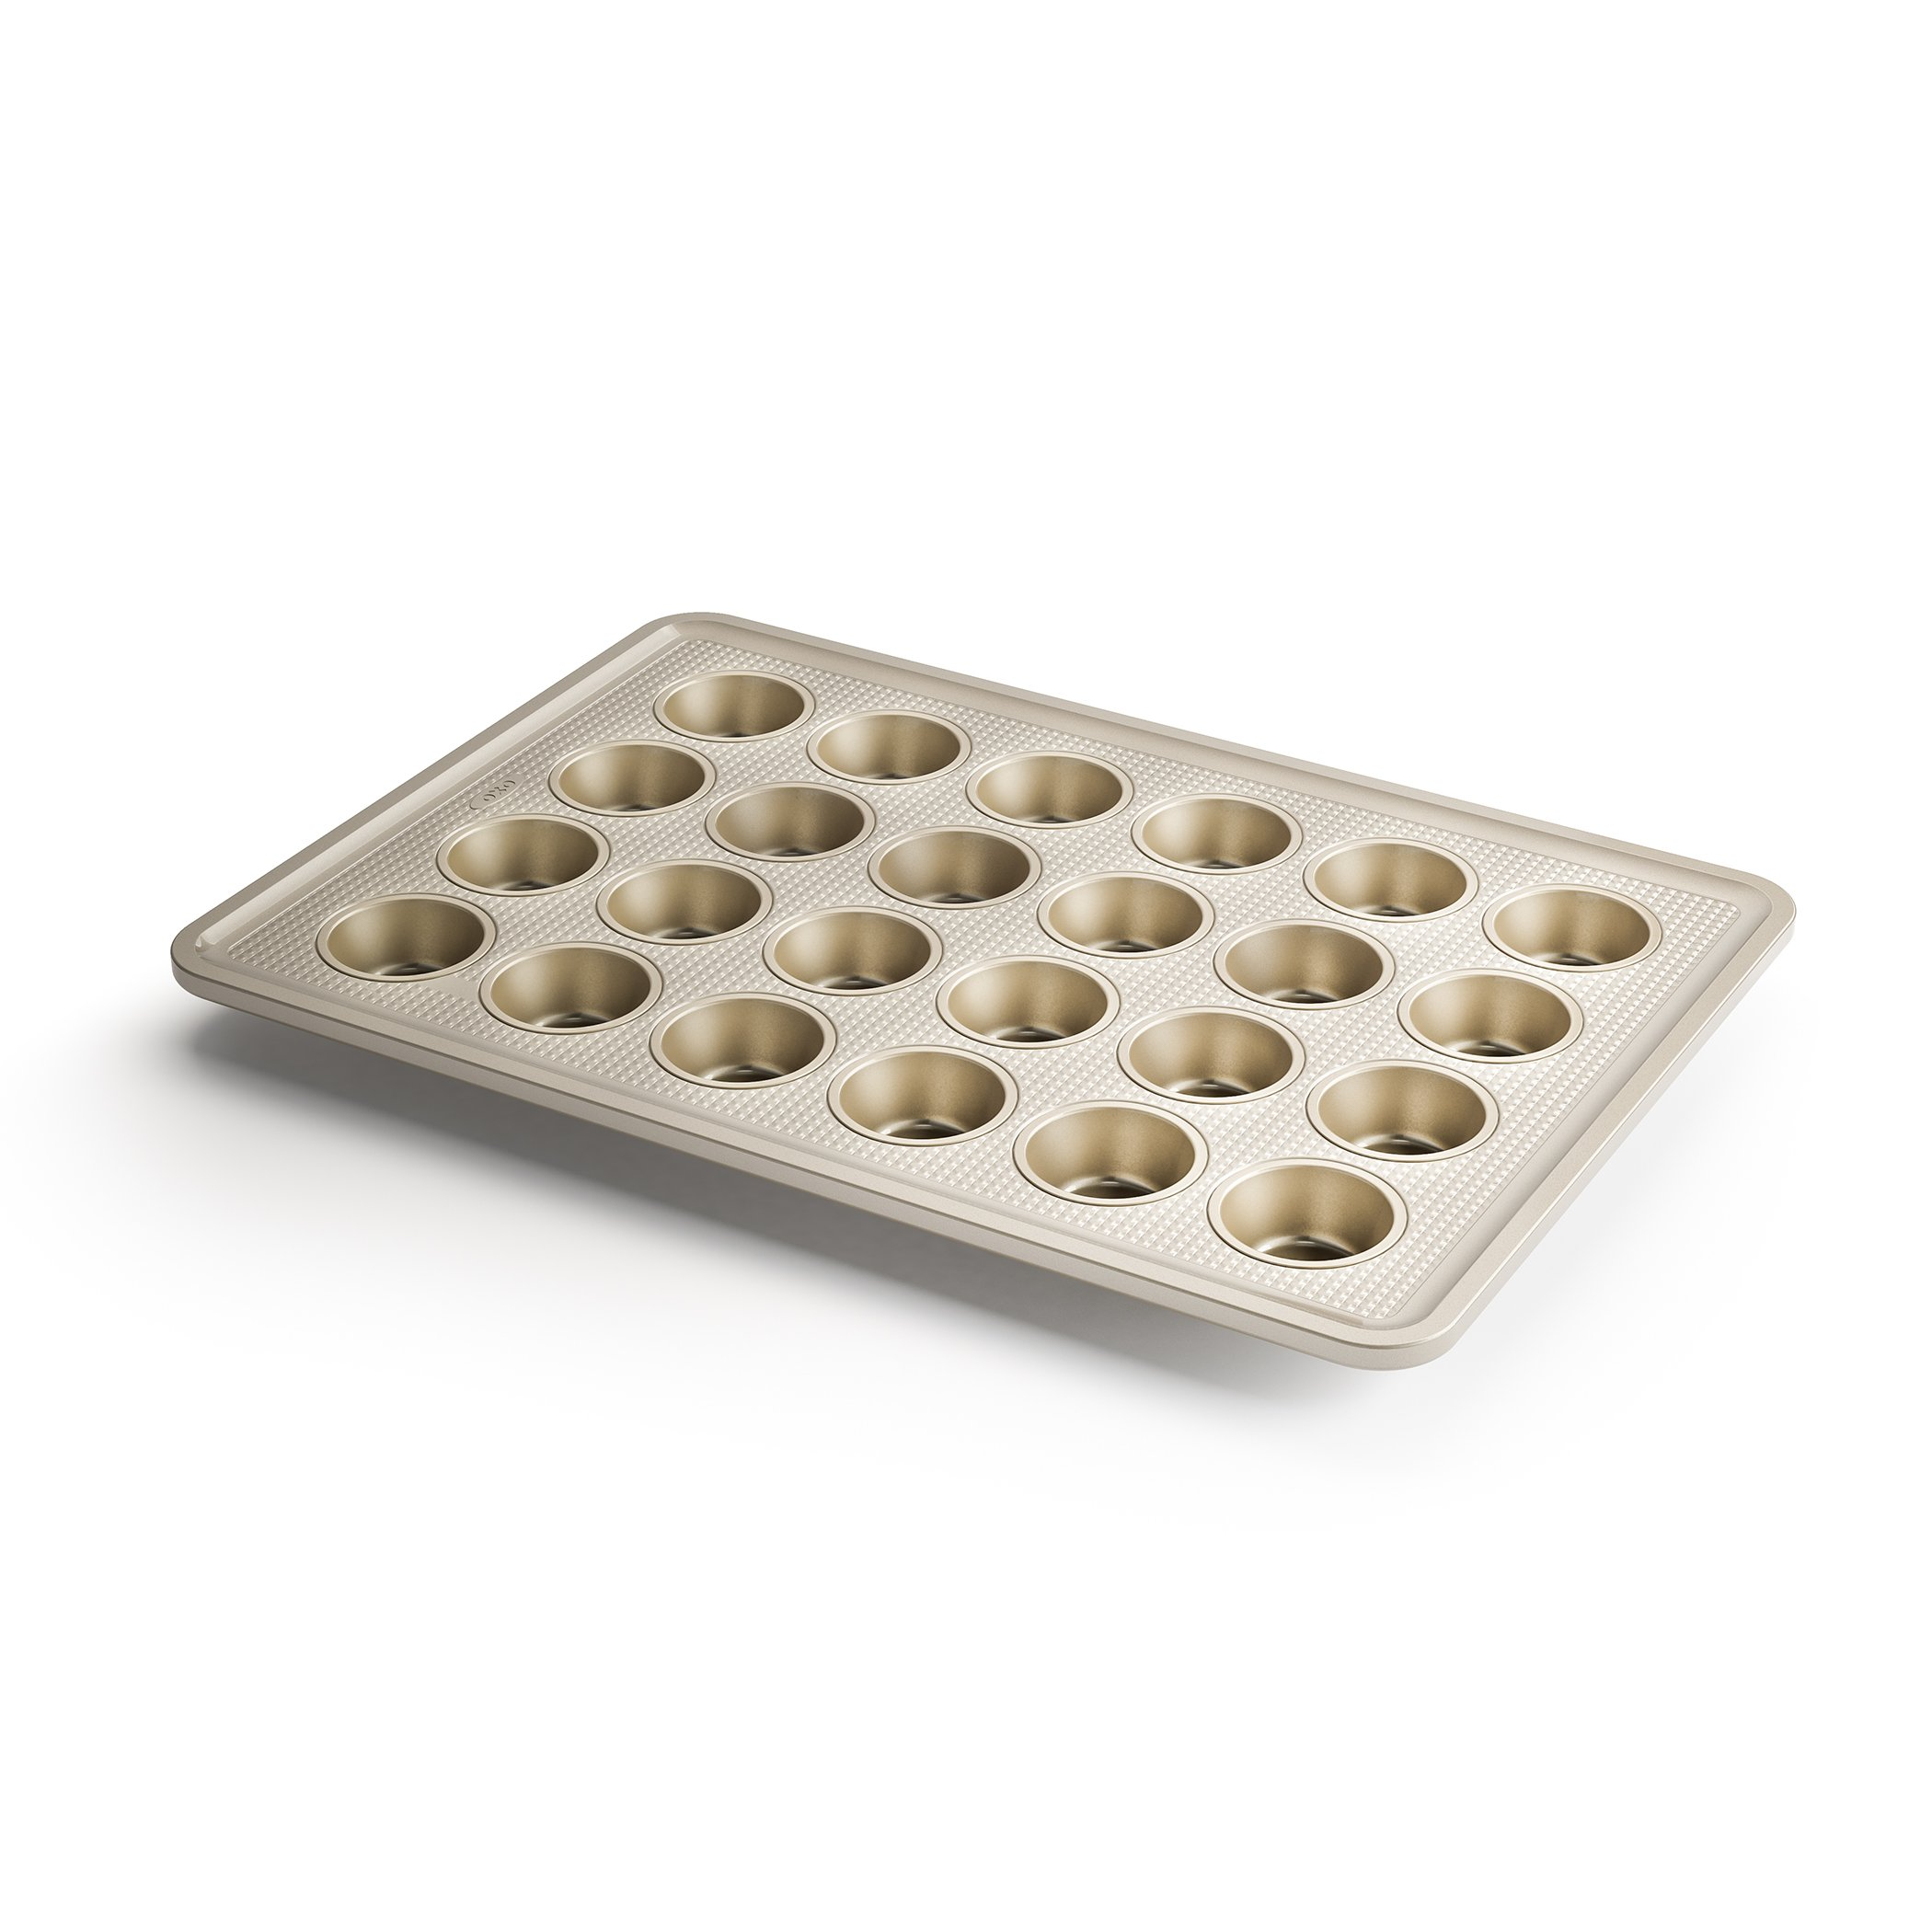 OXO Good Grips Non-Stick Pro Mini Muffin Pan by OXO